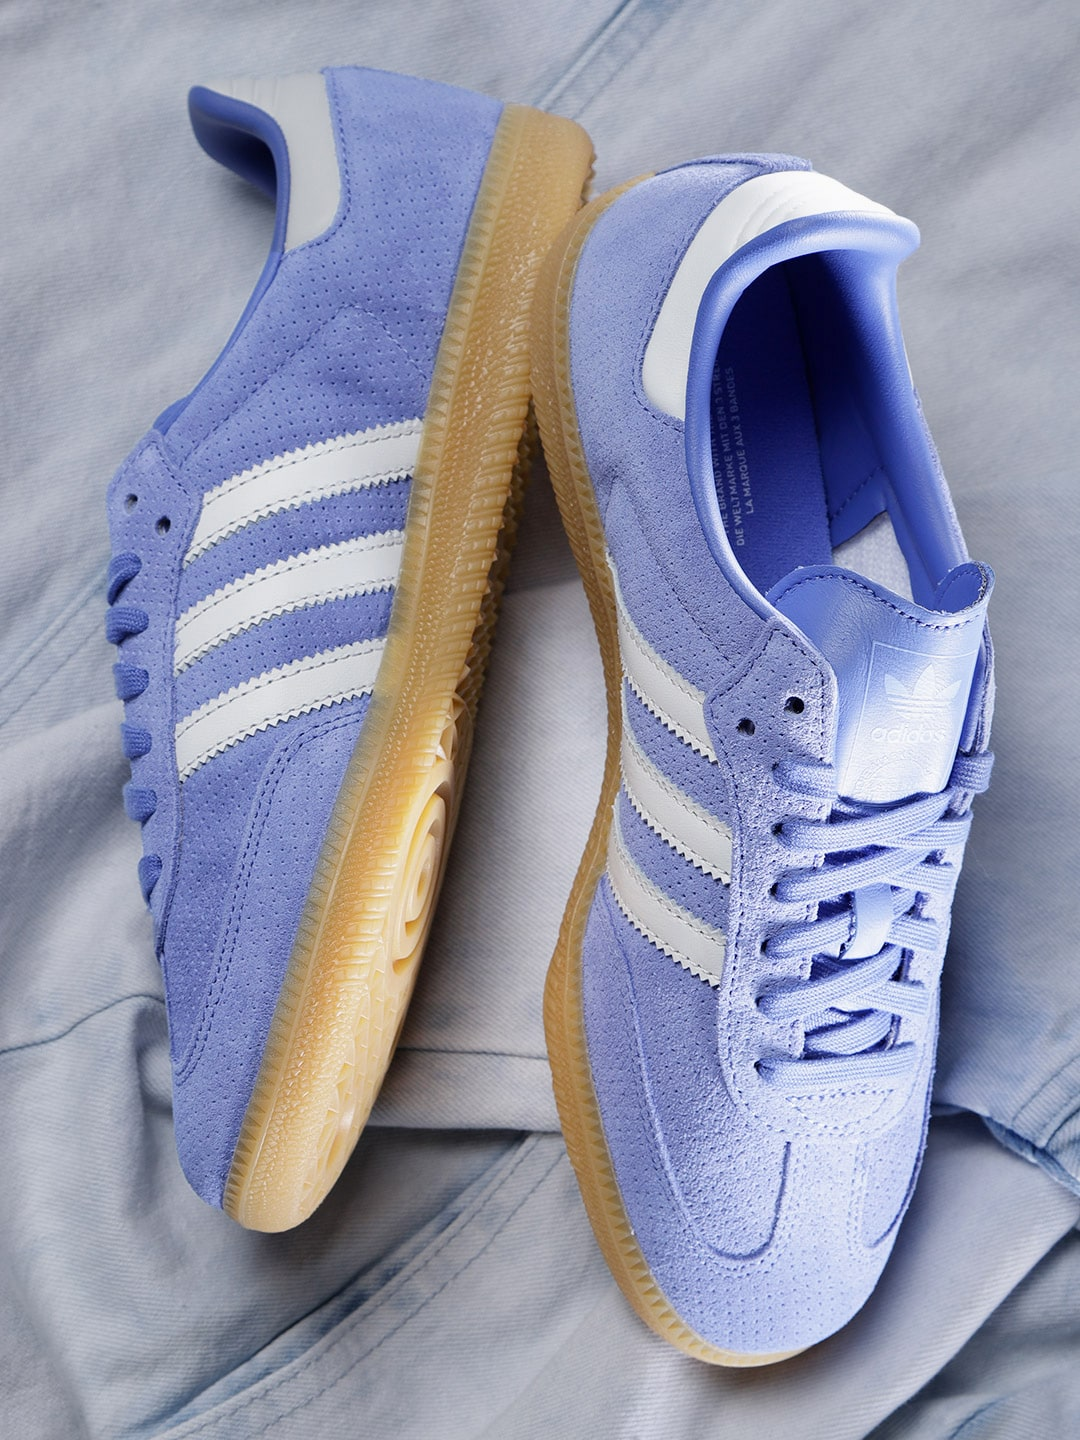 huge discount 2f399 bd19d Adidas Shoes - Buy Adidas Shoes for Men  Women Online - Mynt